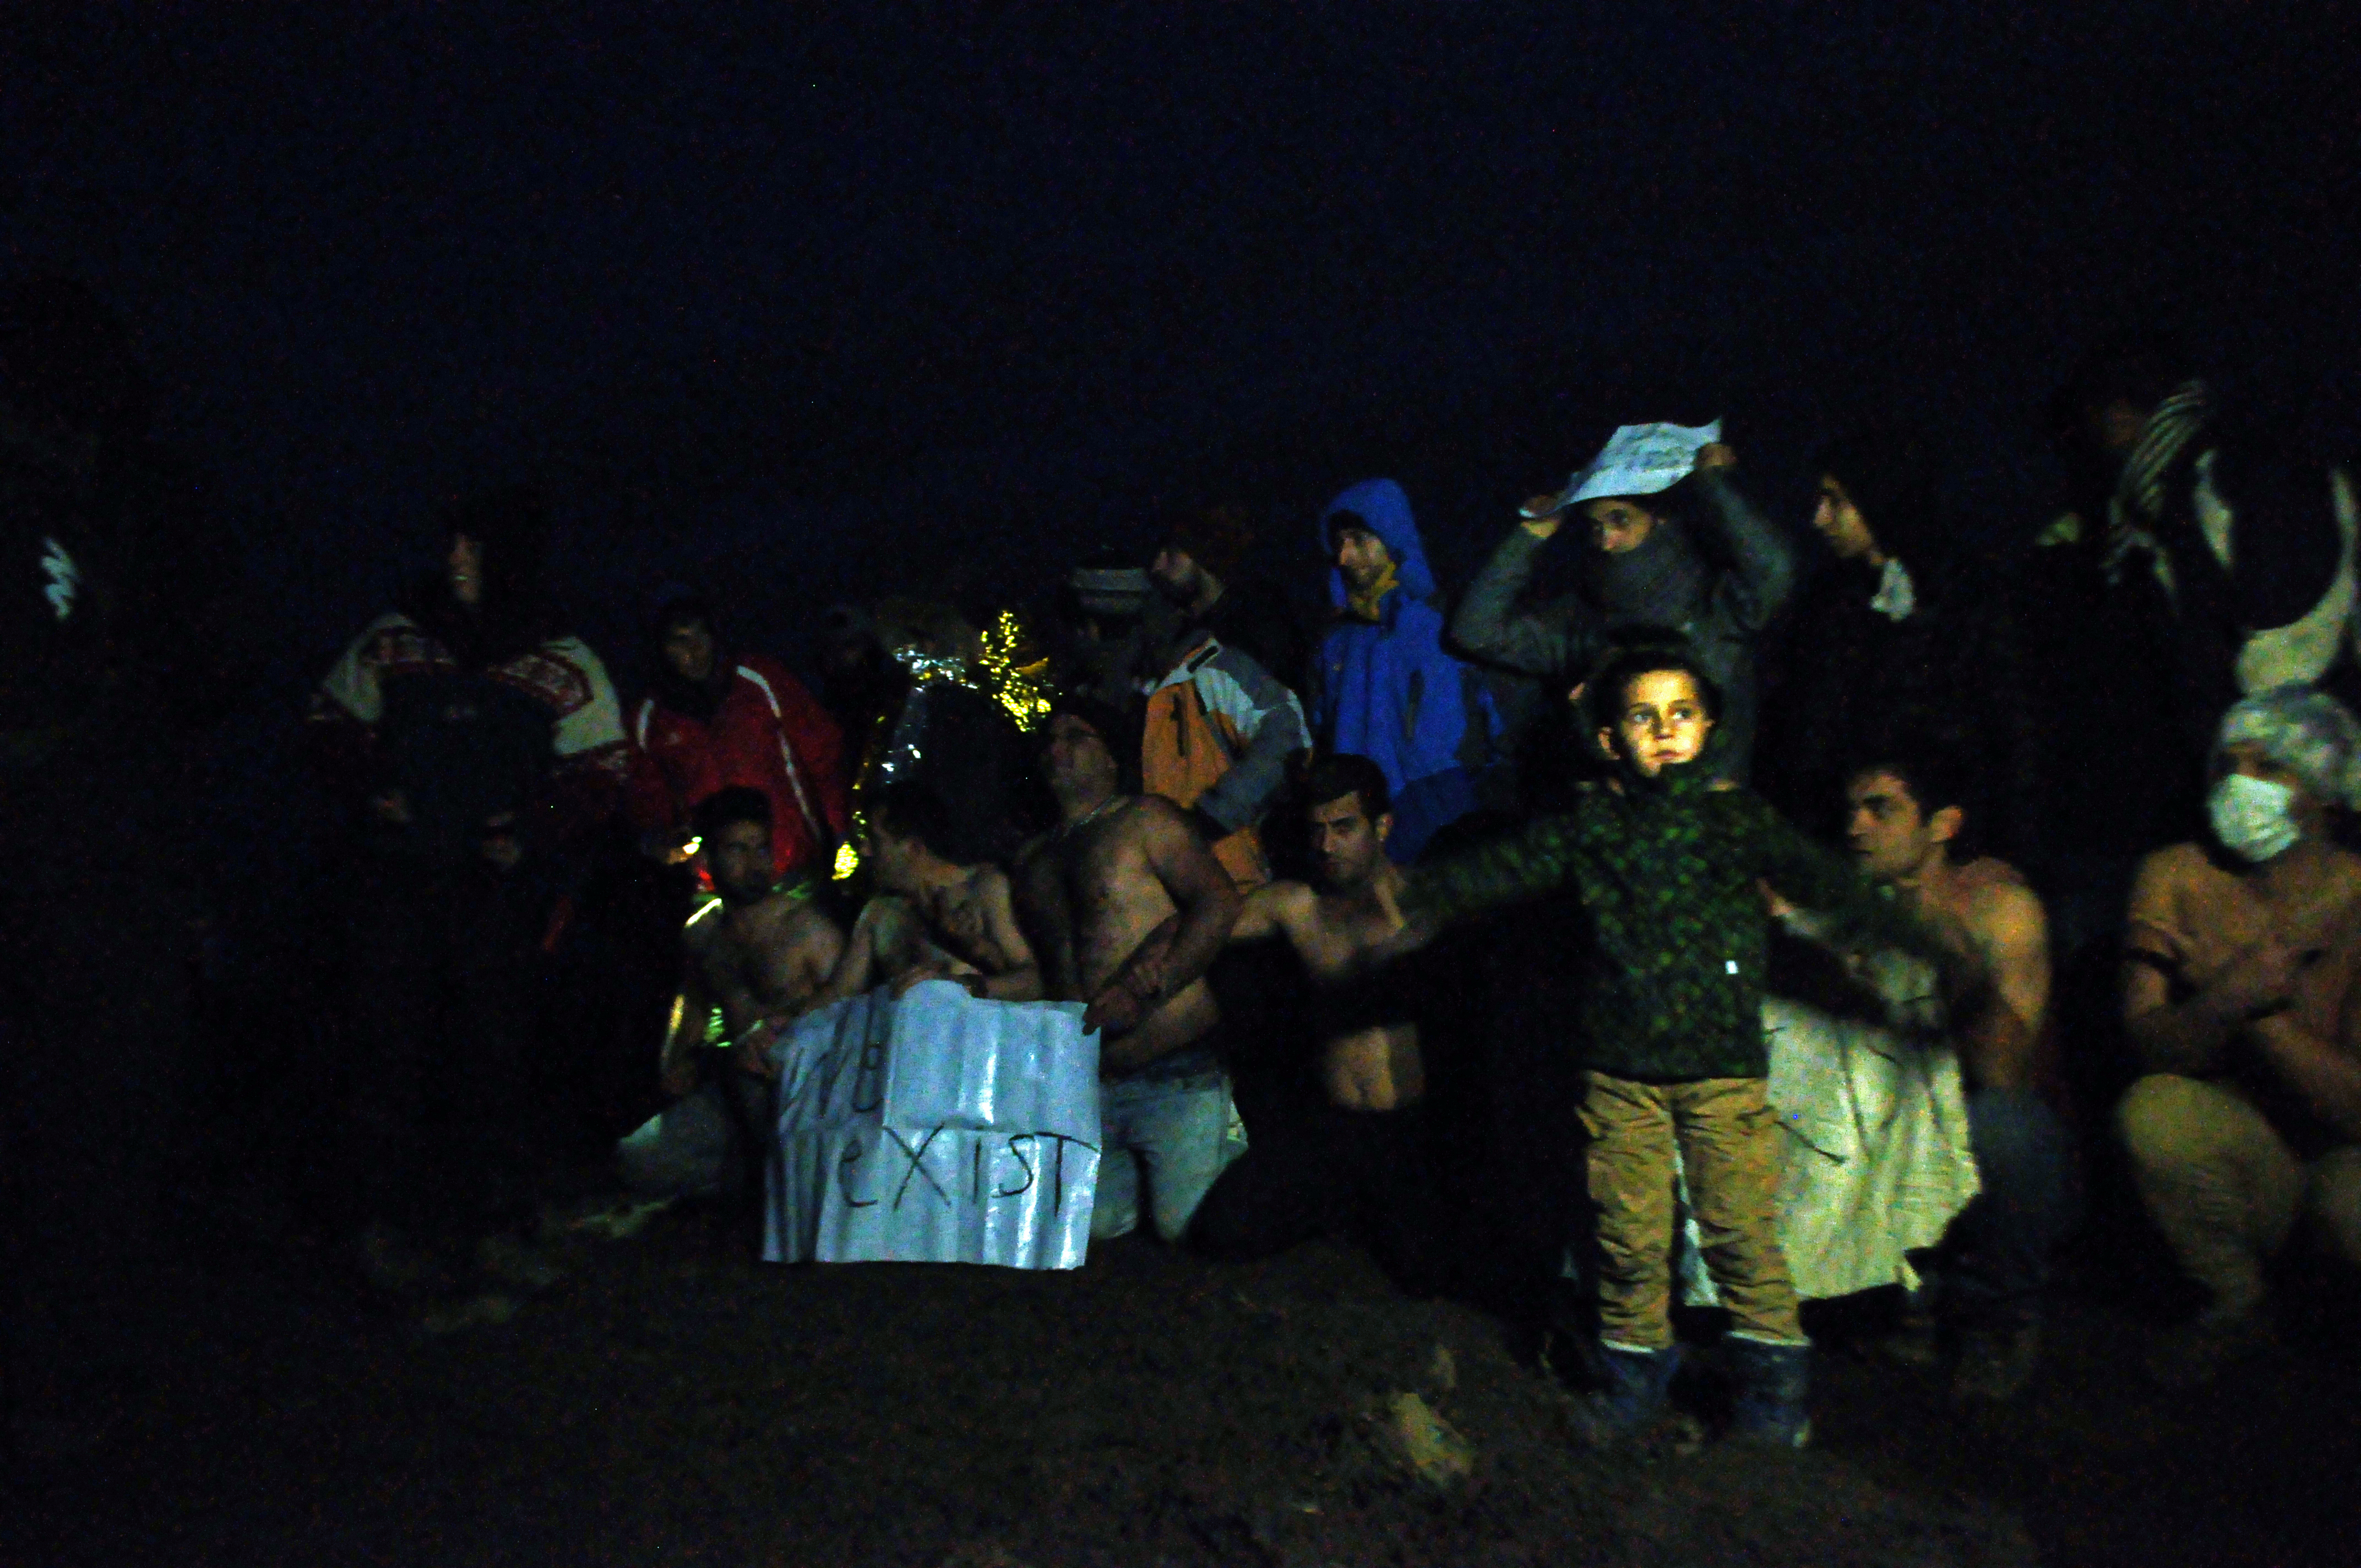 Refugees in Serbia 2016